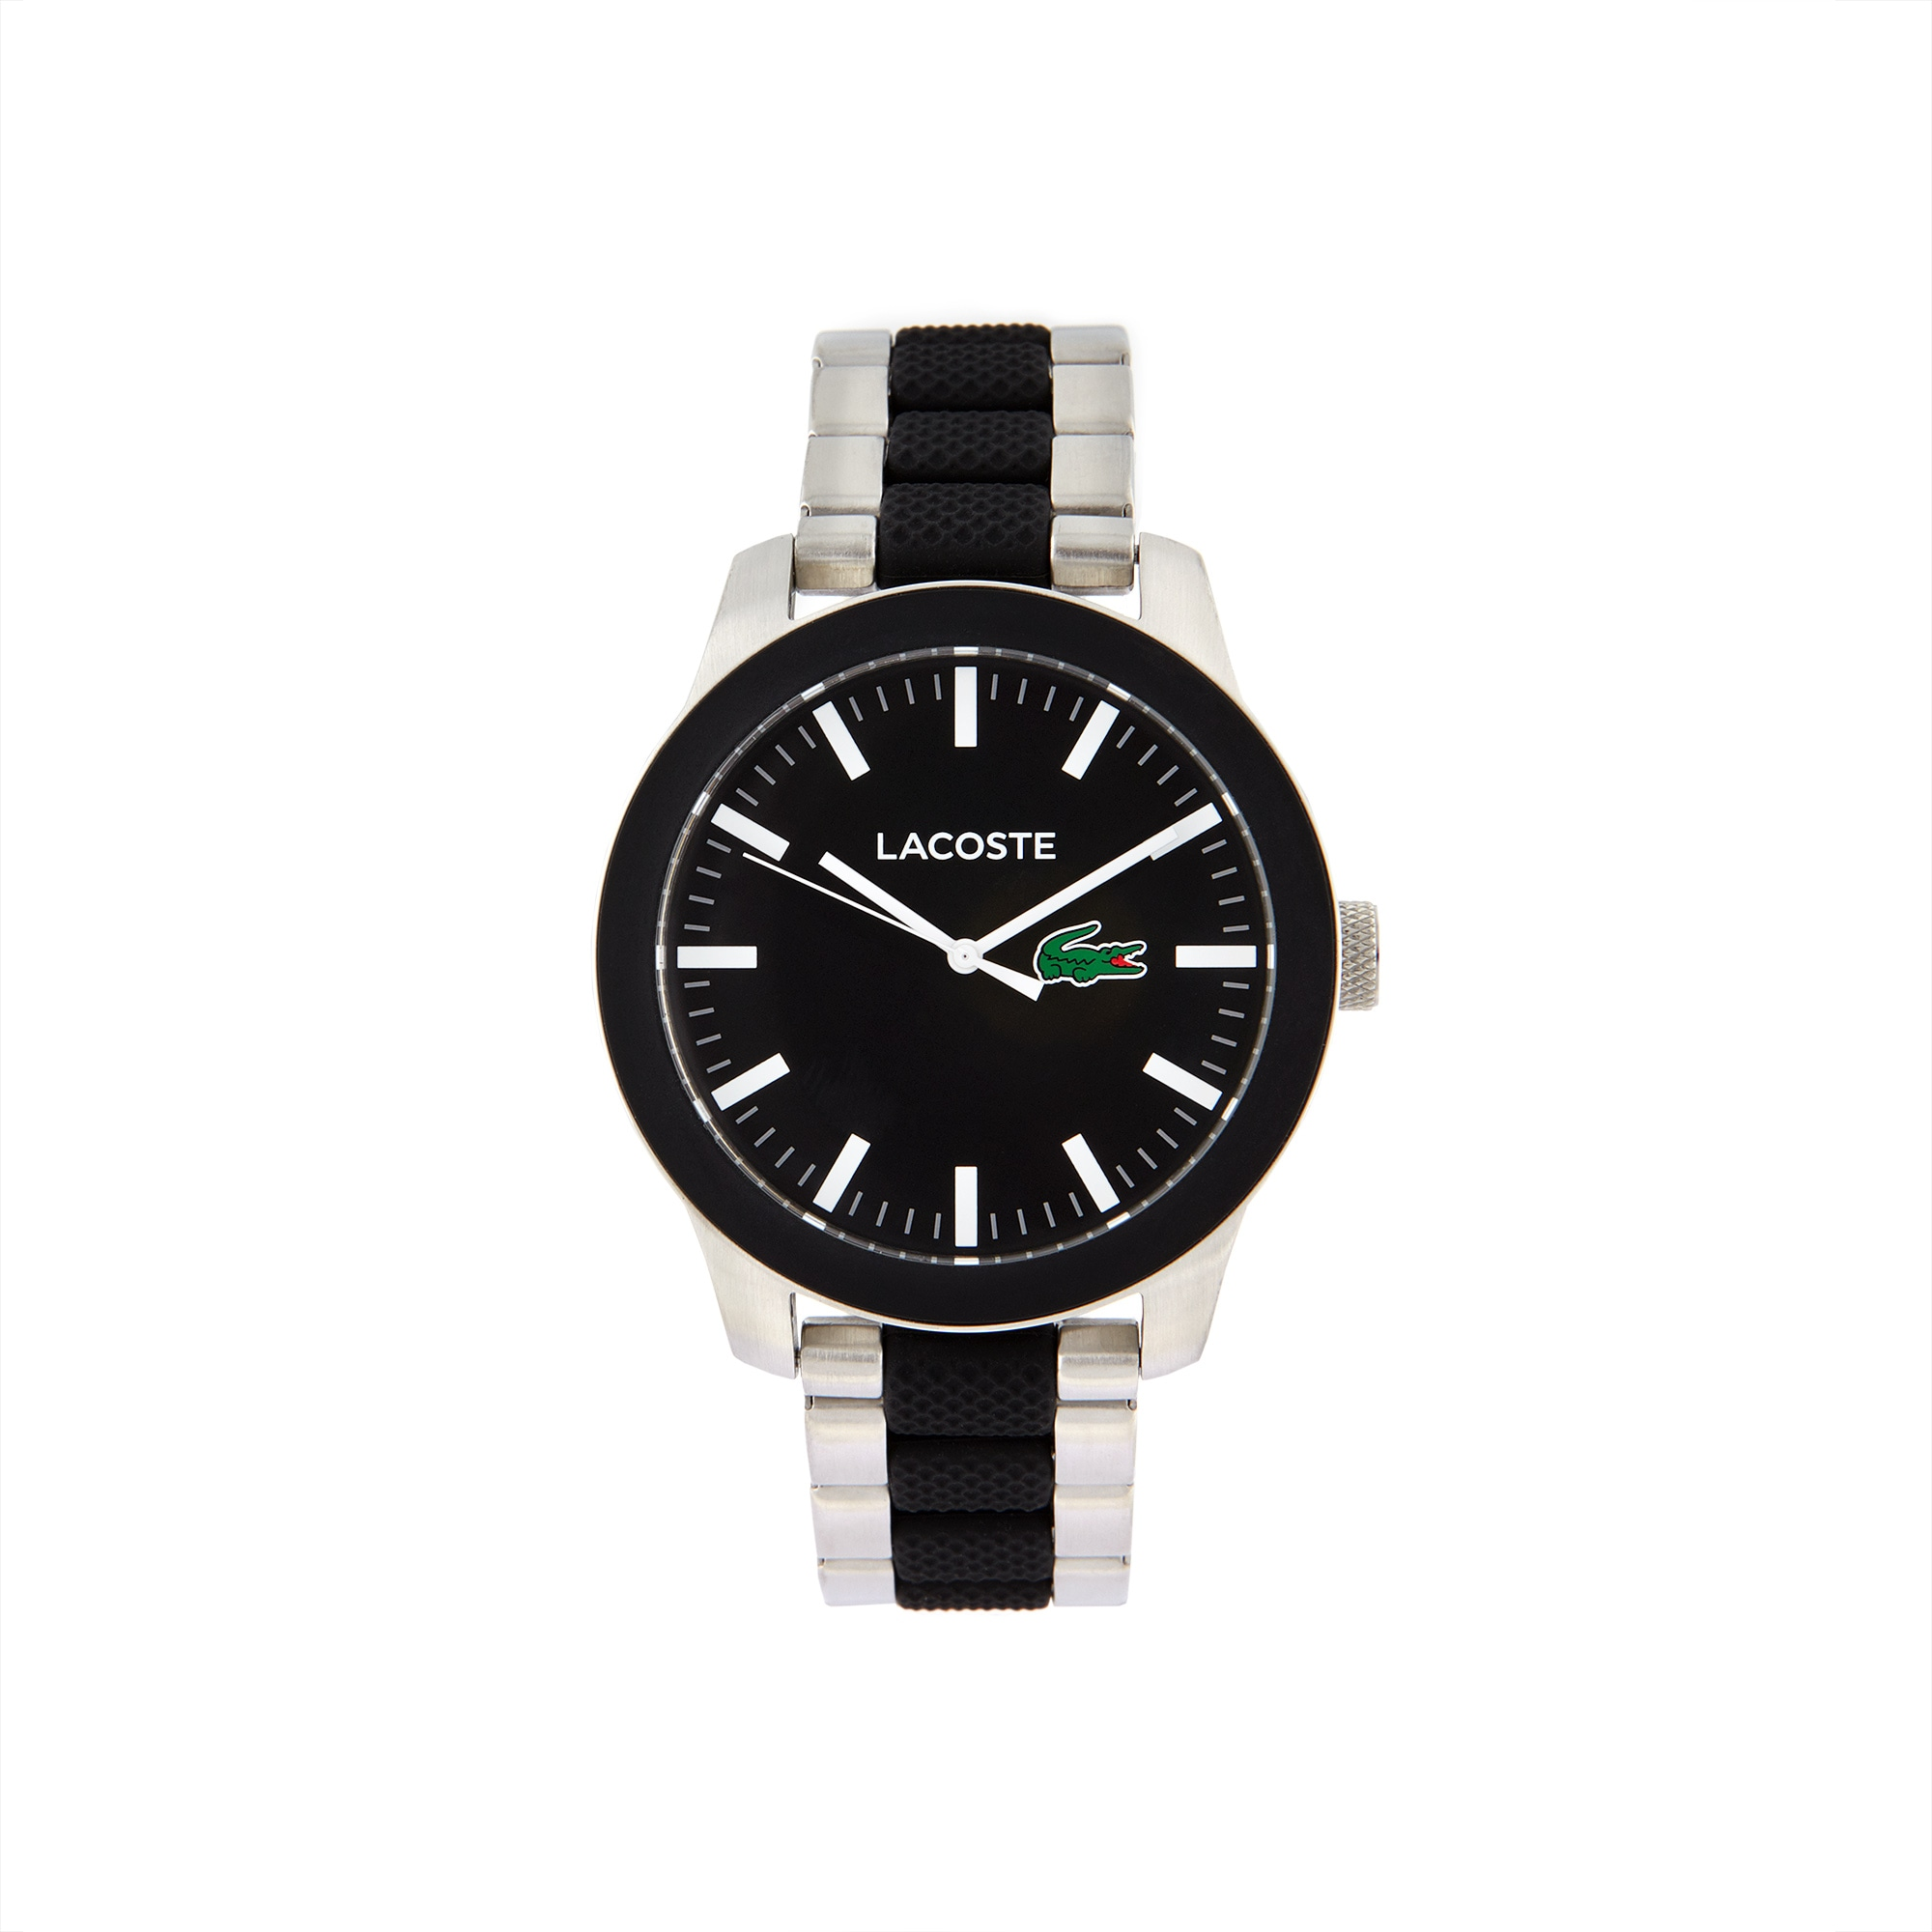 Men's Lacoste 12.12 Watch with Black Steel Strap